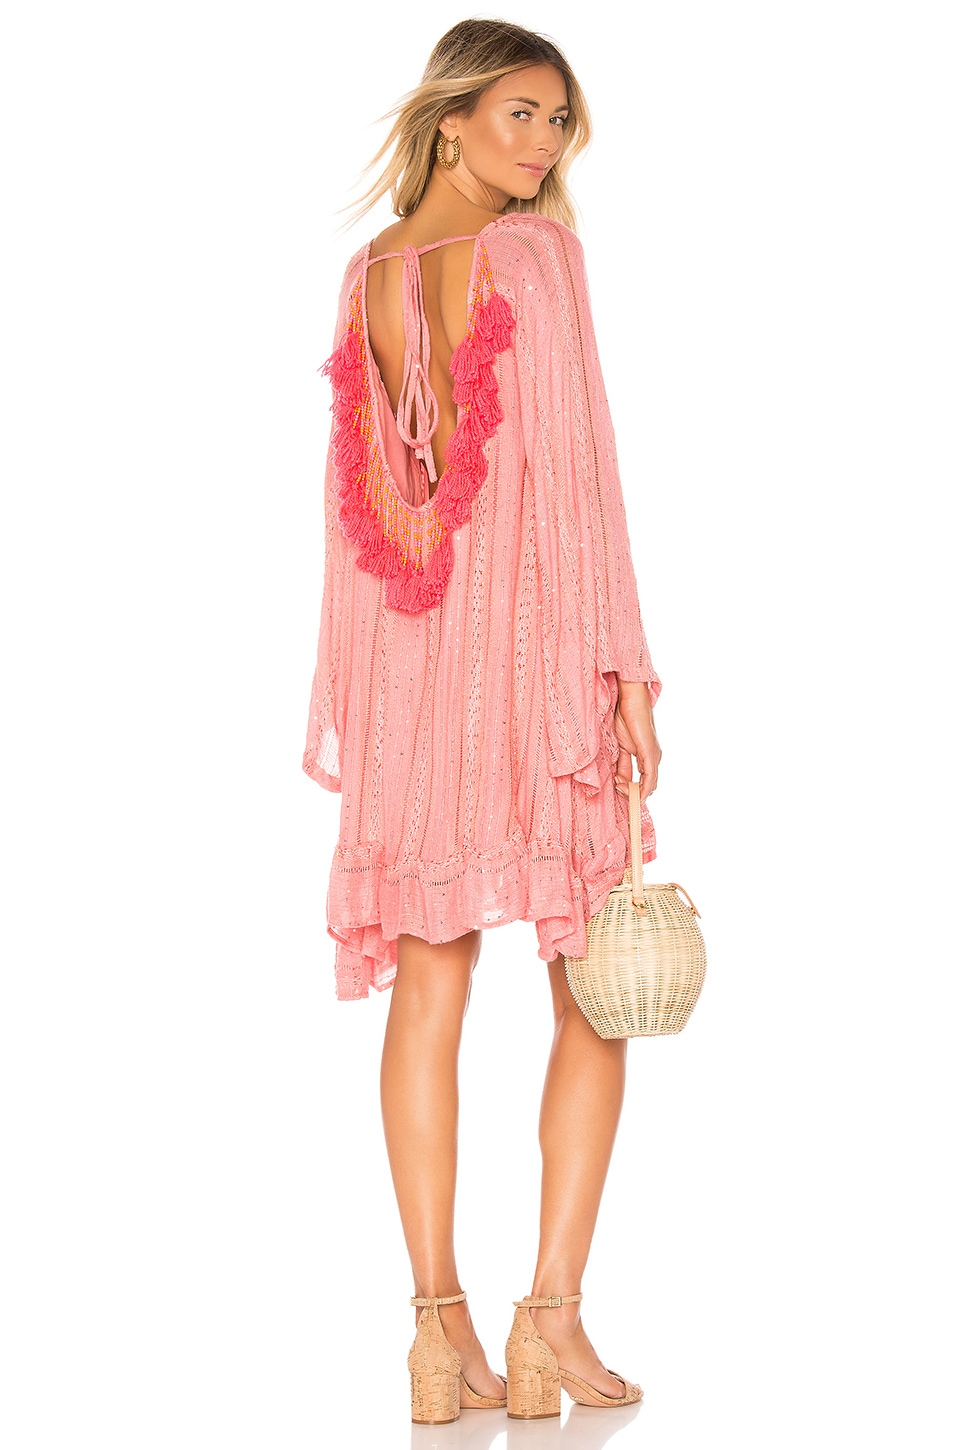 Sundress Indiana Dress in Petra French Rose & Neon Coral